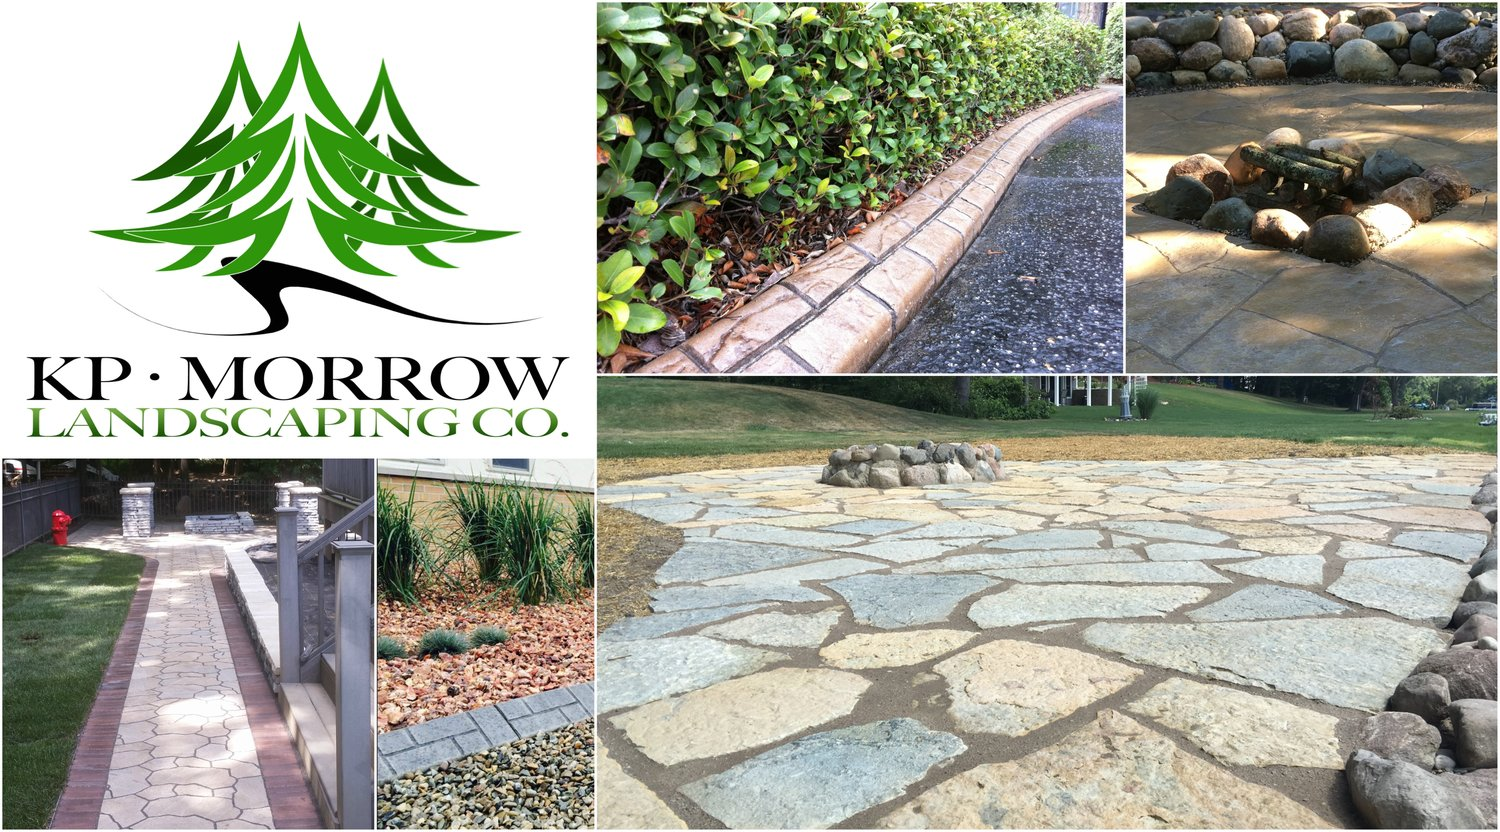 KP Morrow Landscaping Co.